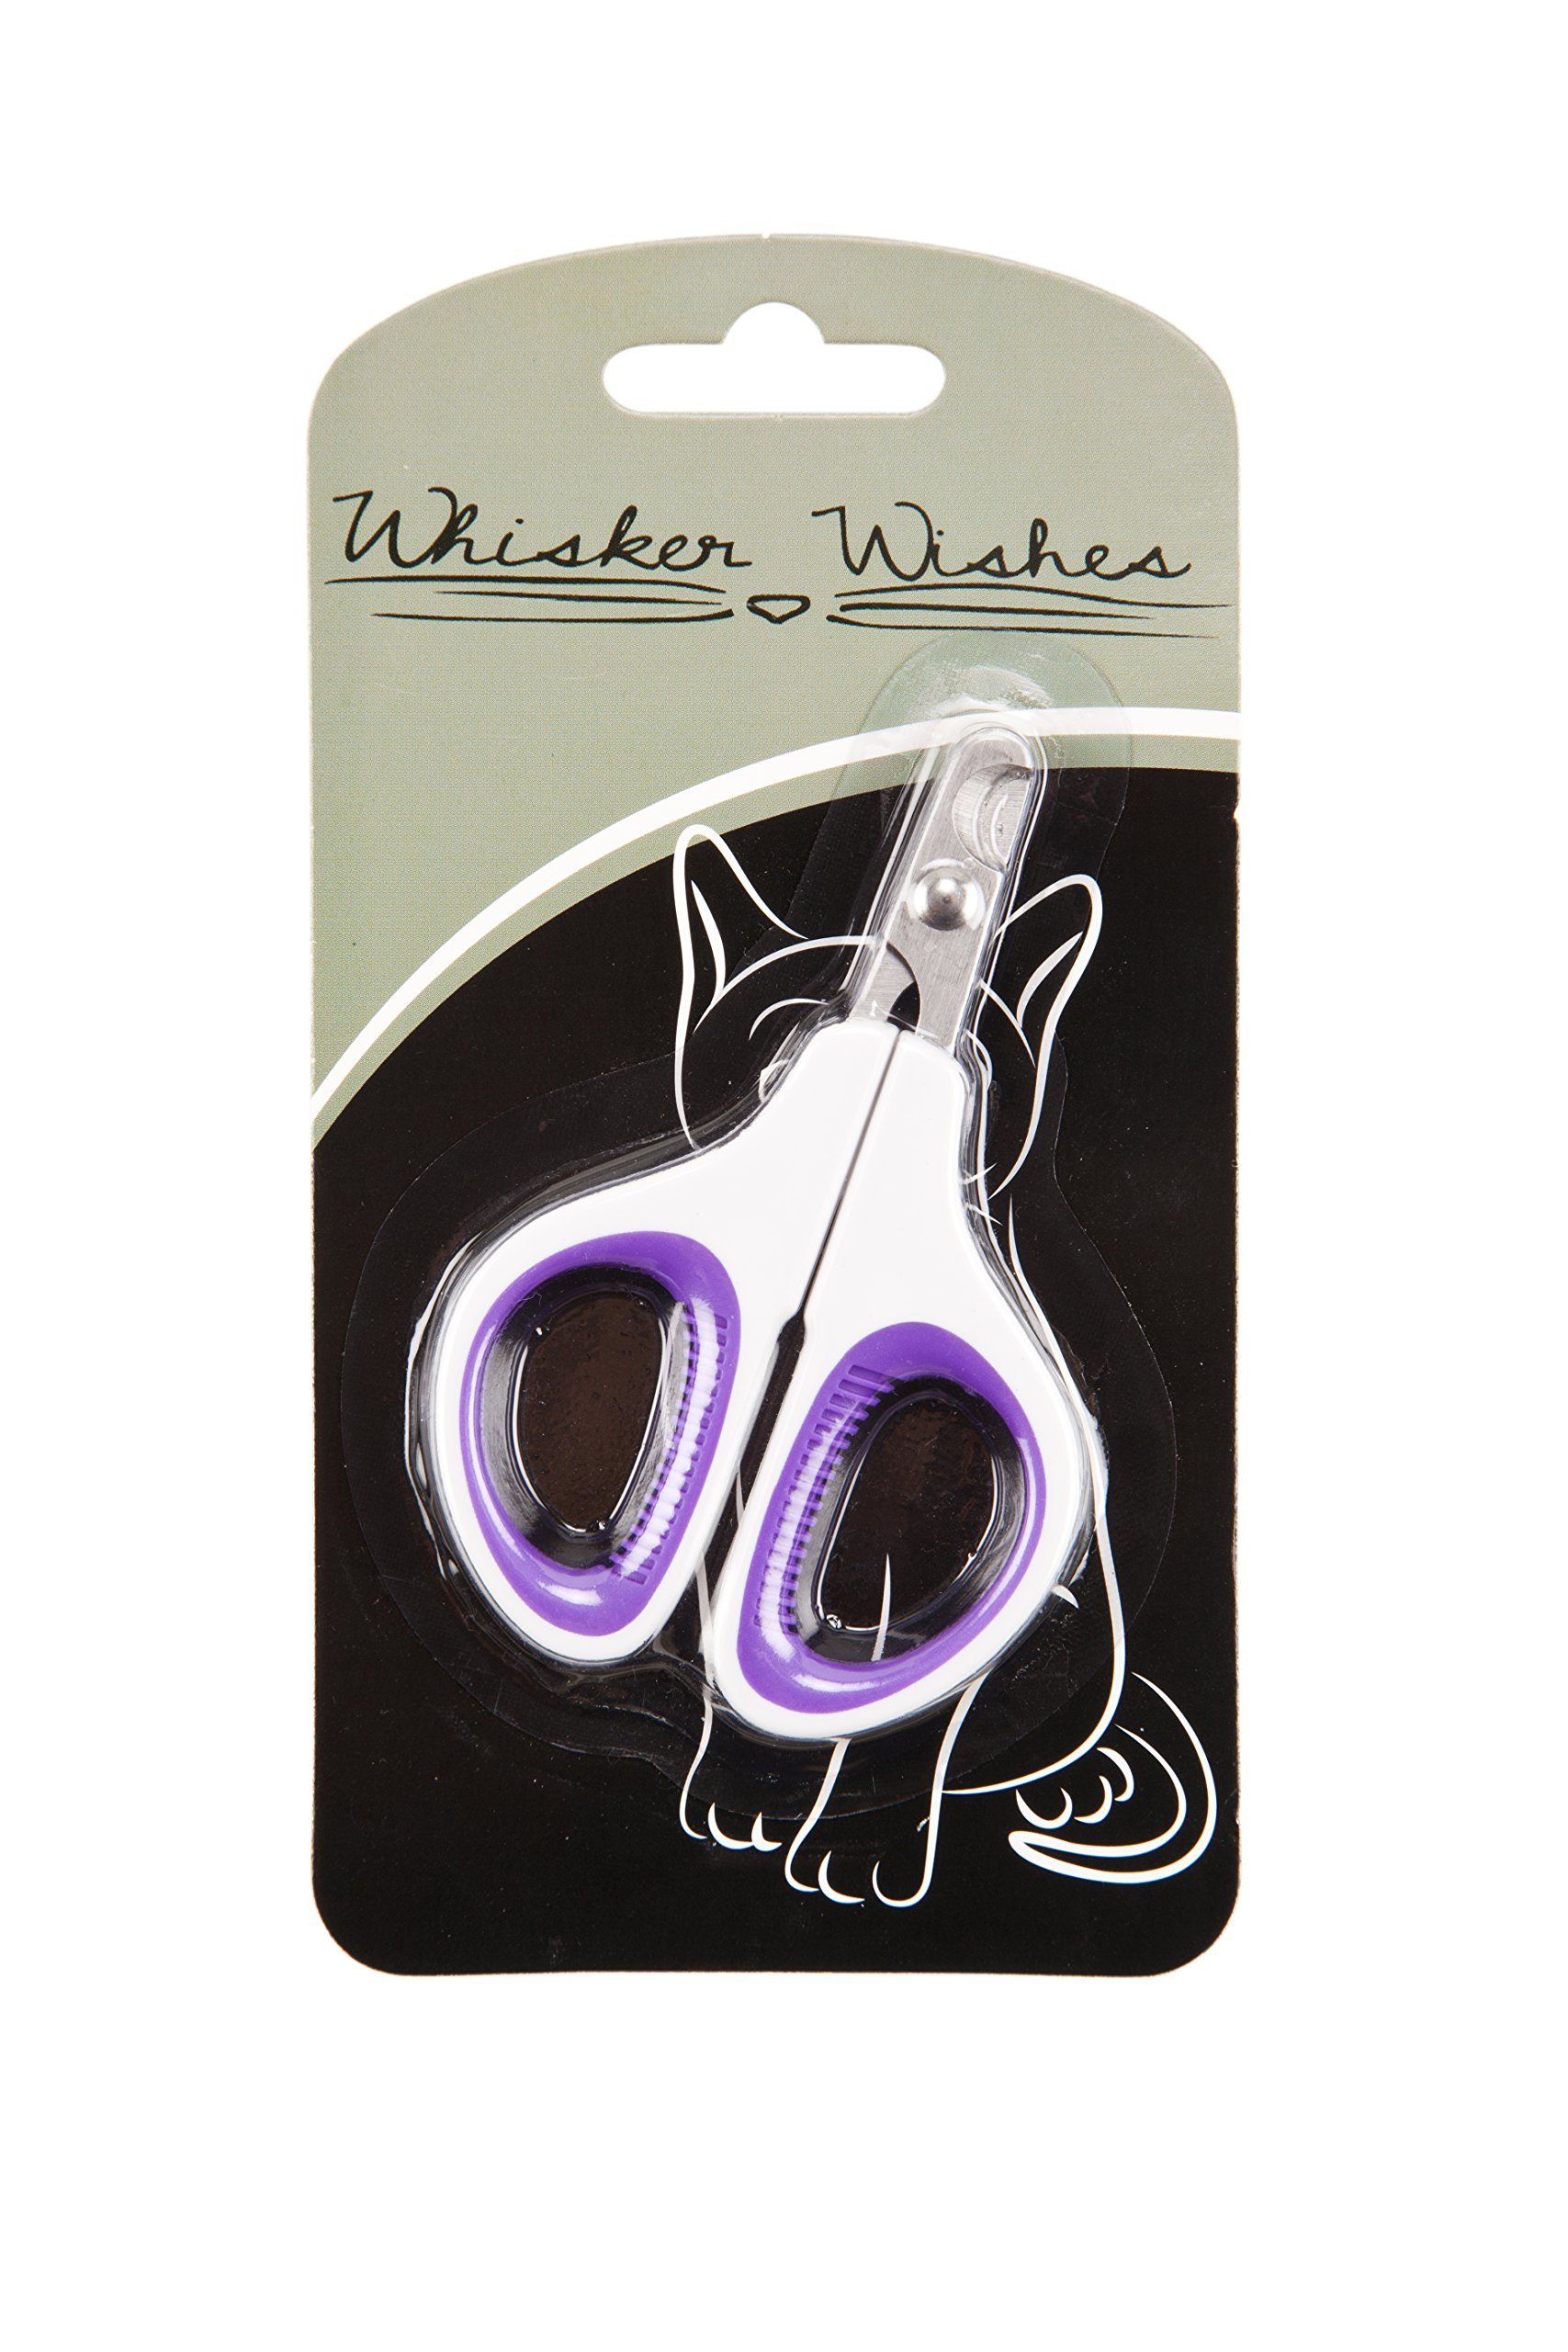 Whisker Wishes Veterinarian Grade Pet Clippers Purple